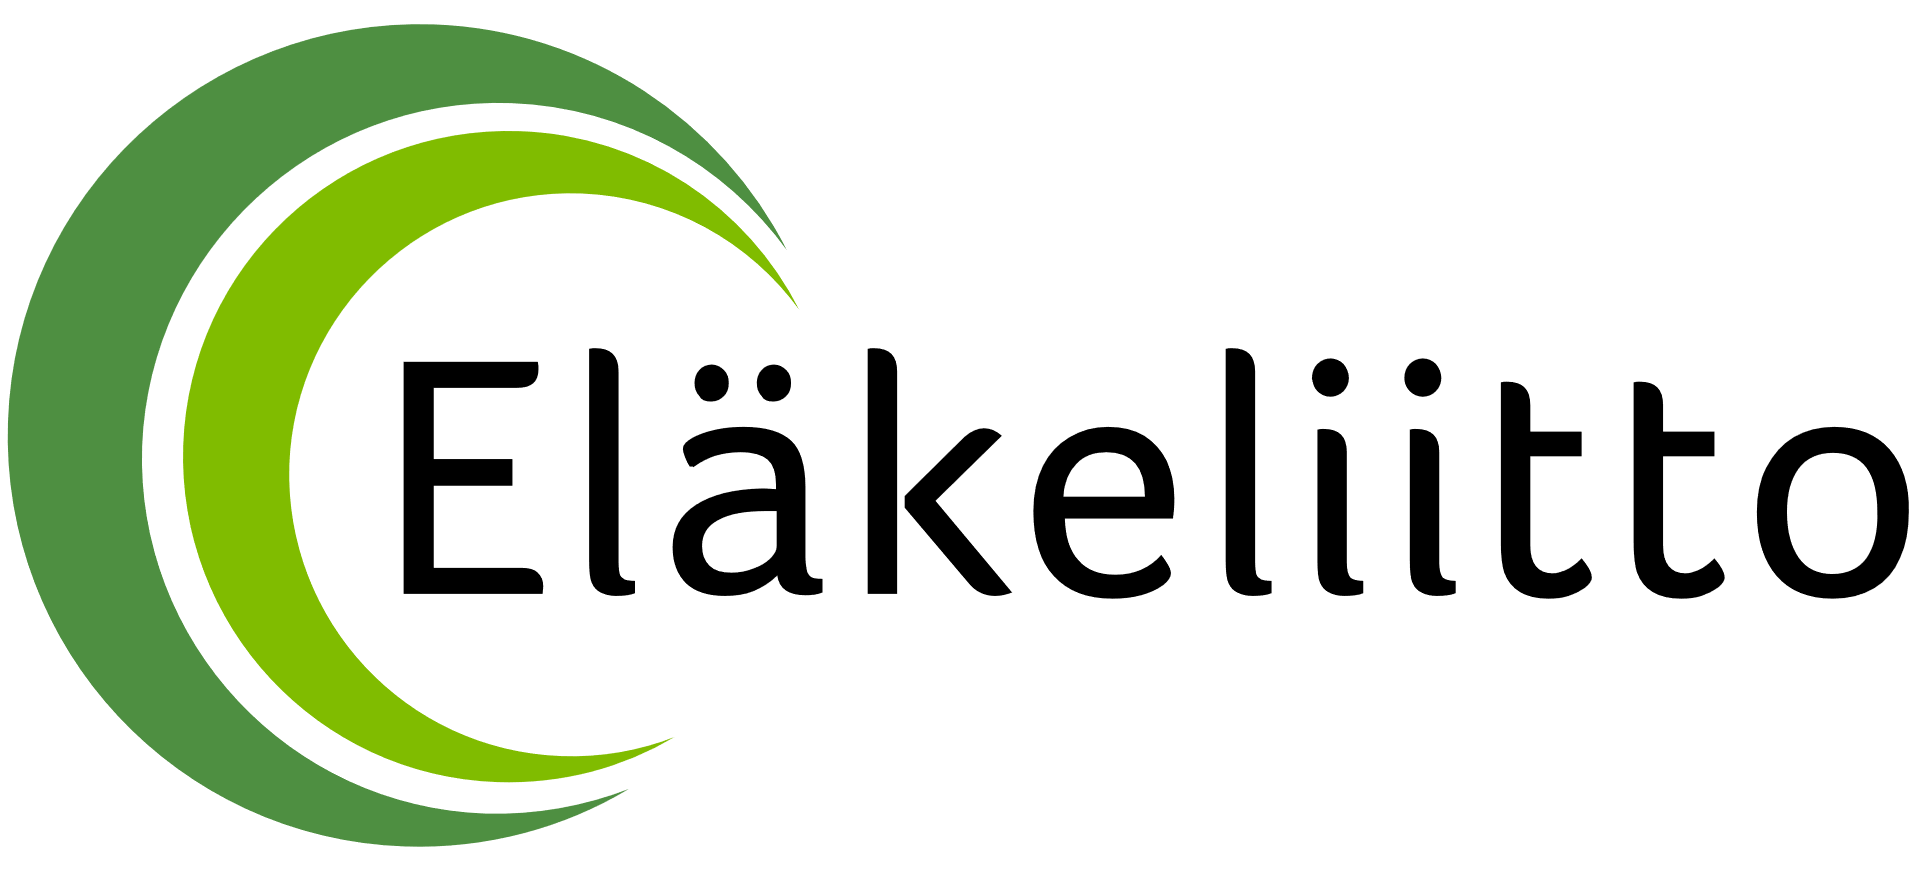 Elakeliitto-FinnishPensionerOrganisation_logo